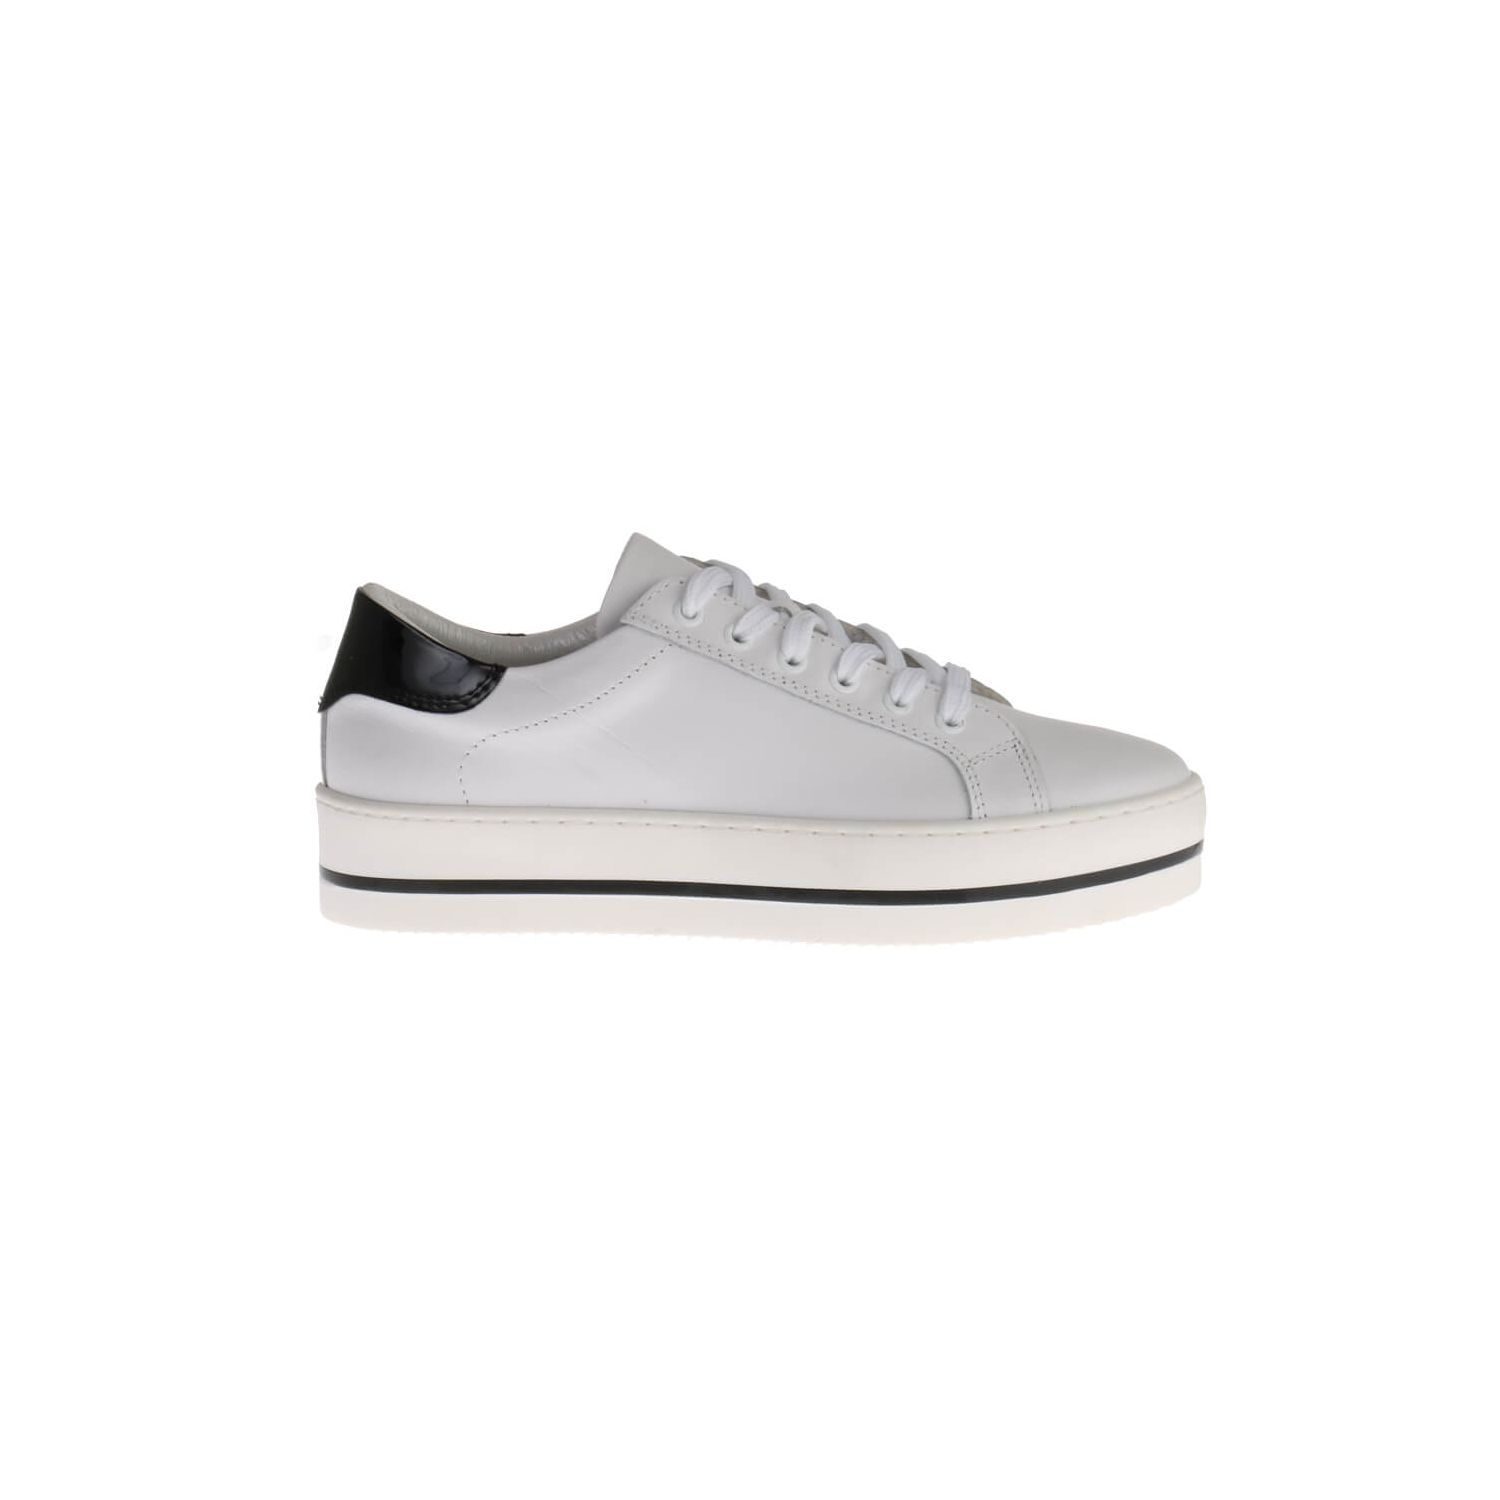 HIP D1496 Sneakers Wit Leer